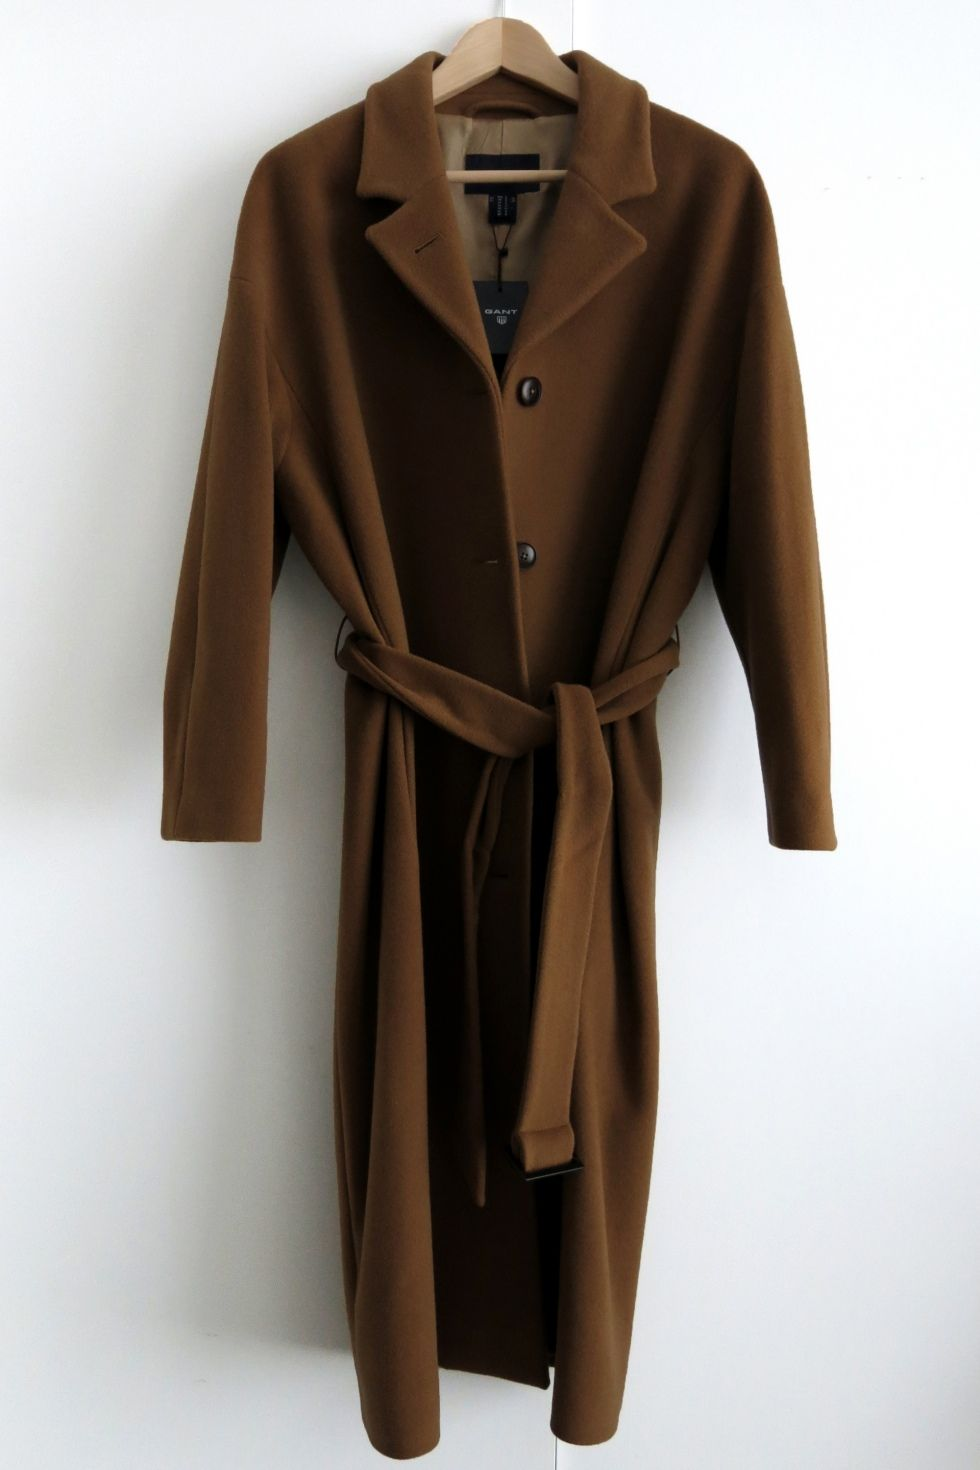 Gant coat camel chic pinterest autumn fashion cold